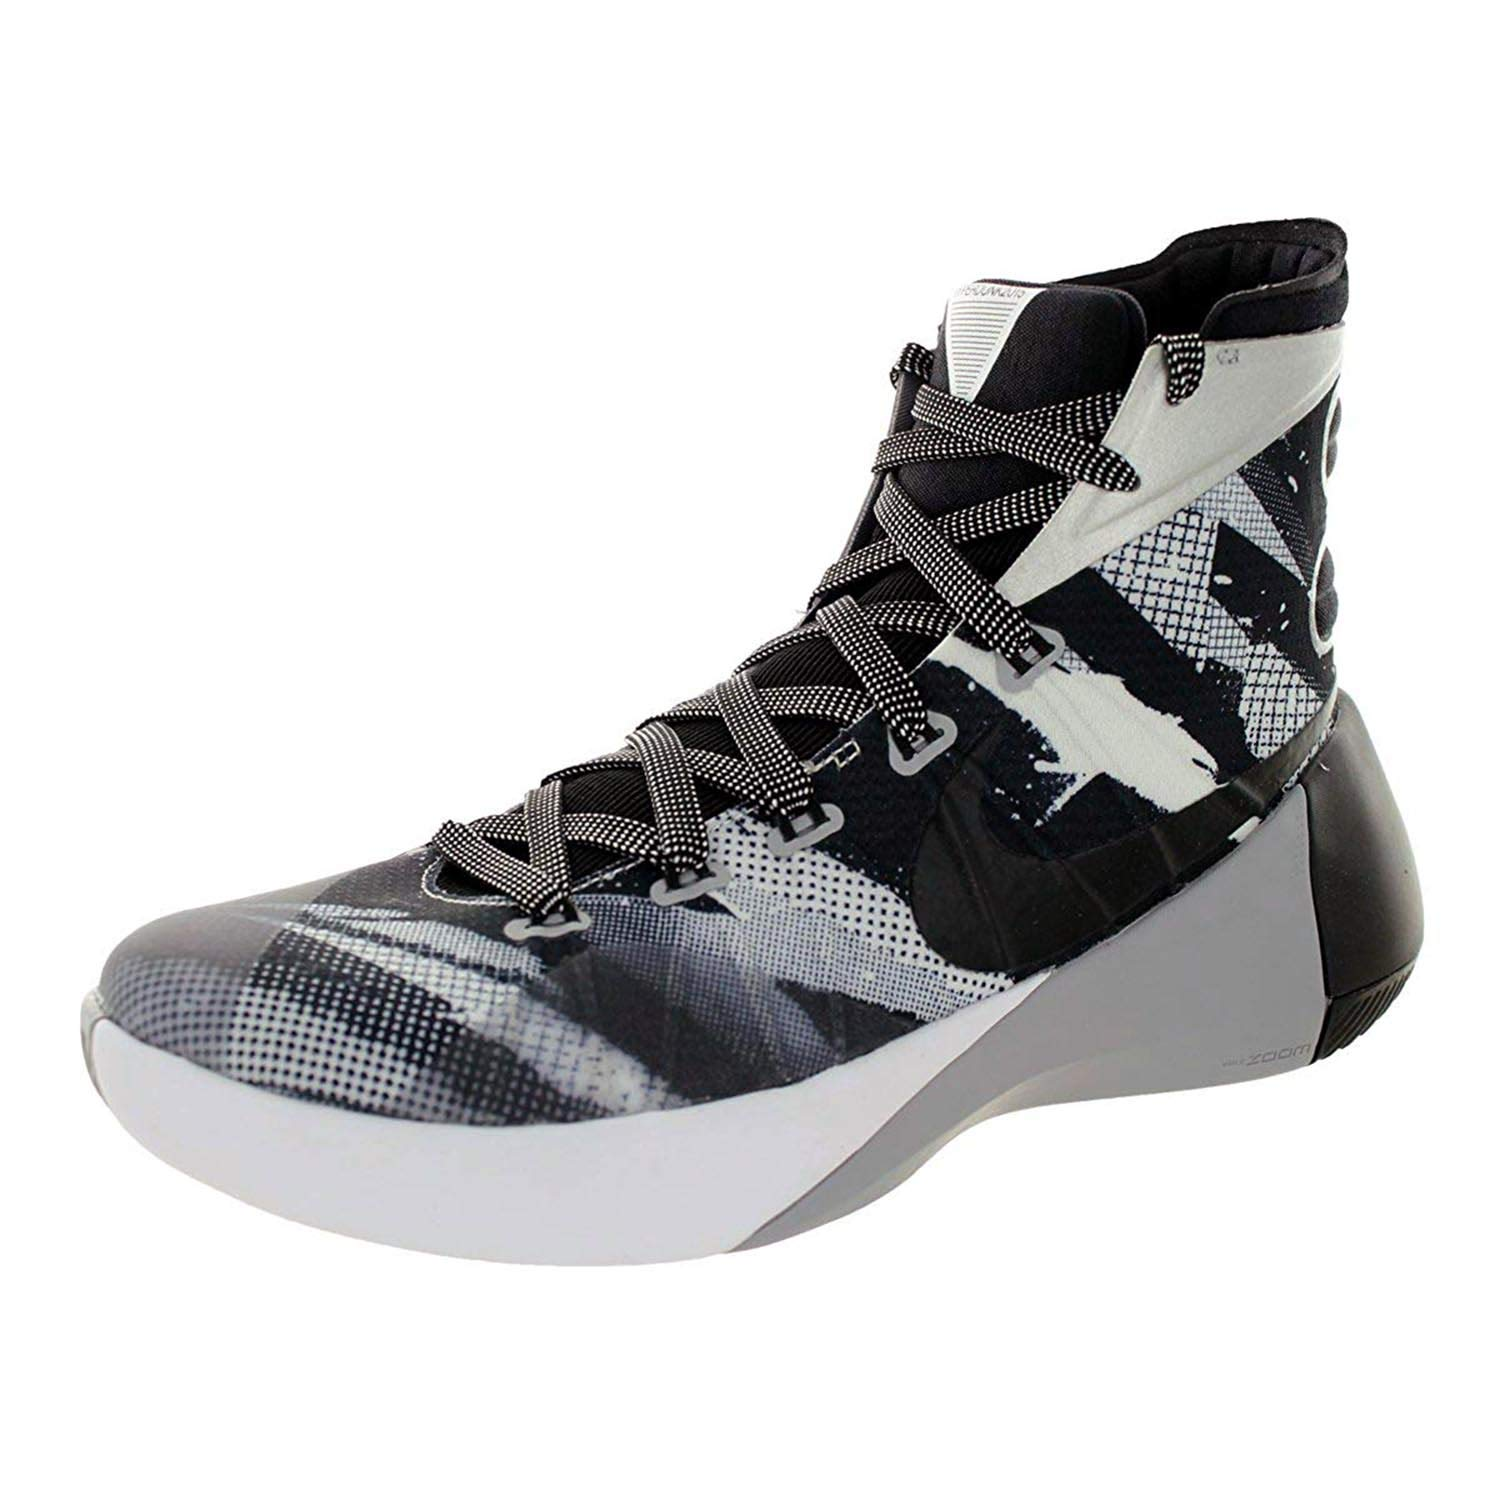 reputable site 02036 eddce Galleon - NIKE Men s Hyperdunk 2015 Premium Basketball Shoe White Wolf Grey  Black Size 9 M US